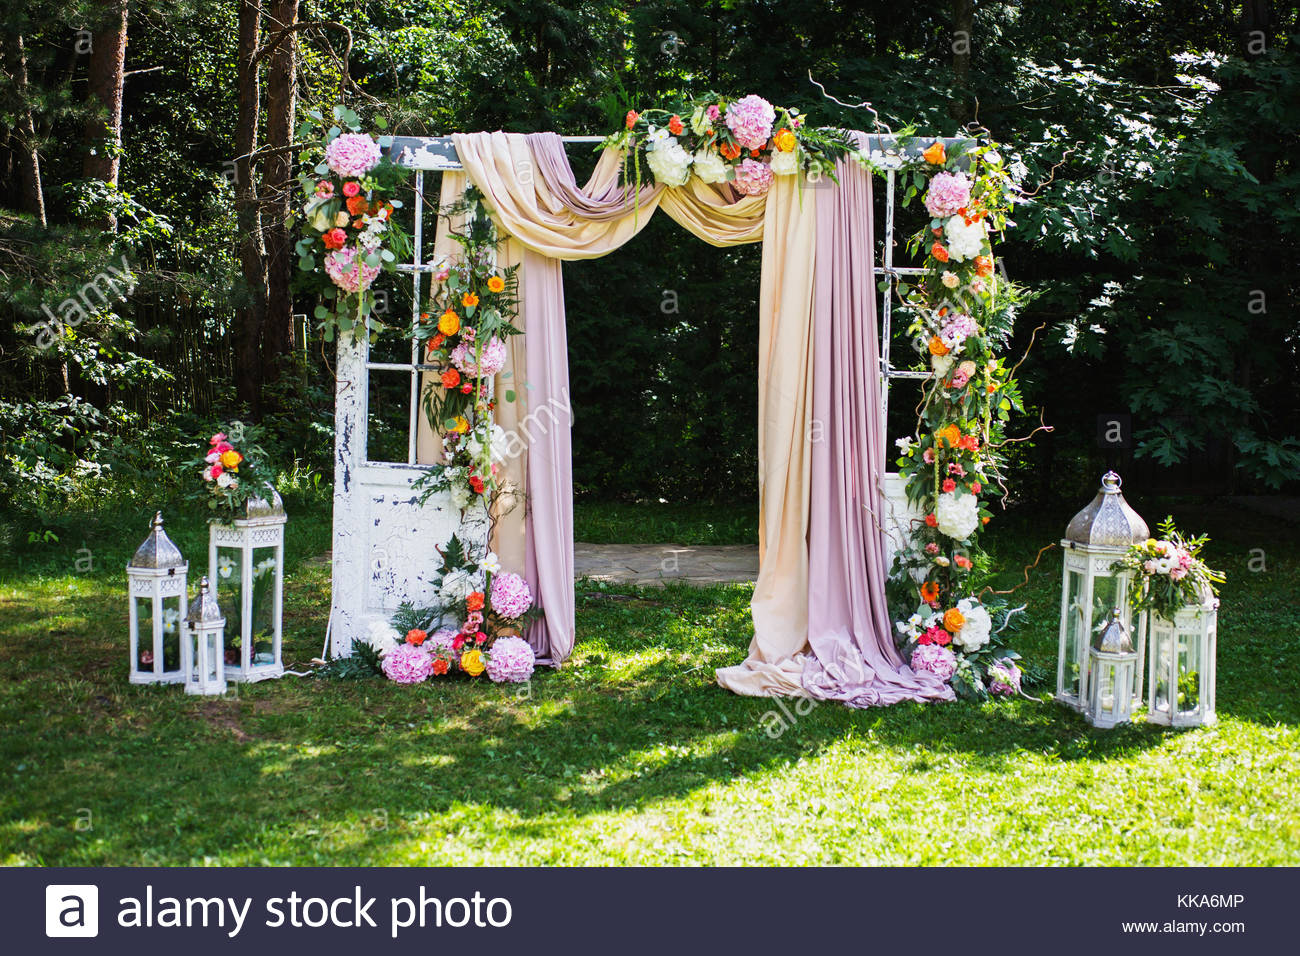 Beautiful wedding ceremony outdoors wedding arch made of cloth and beautiful wedding ceremony outdoors wedding arch made of cloth and white and pink flowers on a green natural background old doors rustic style junglespirit Image collections